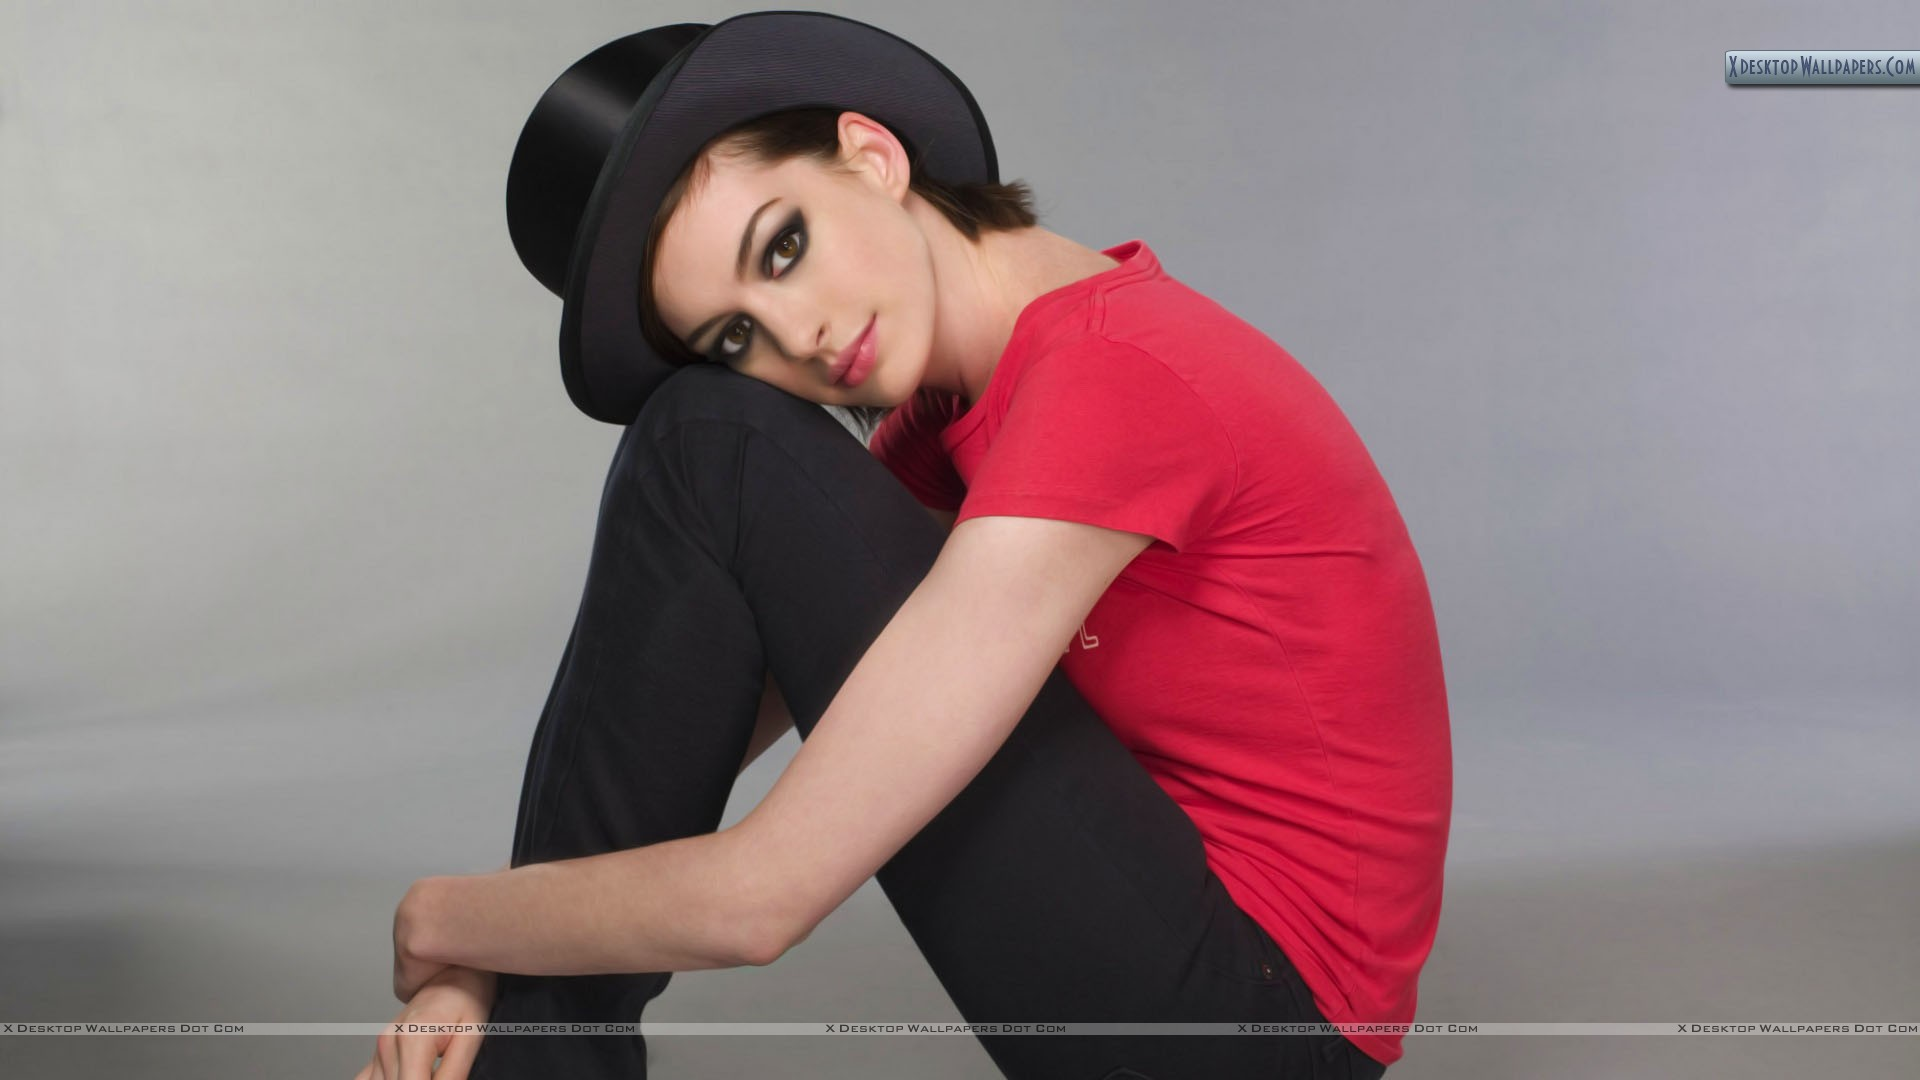 Anne Hathaway Sitting And Thinking Something Red Top Black Jeans ...